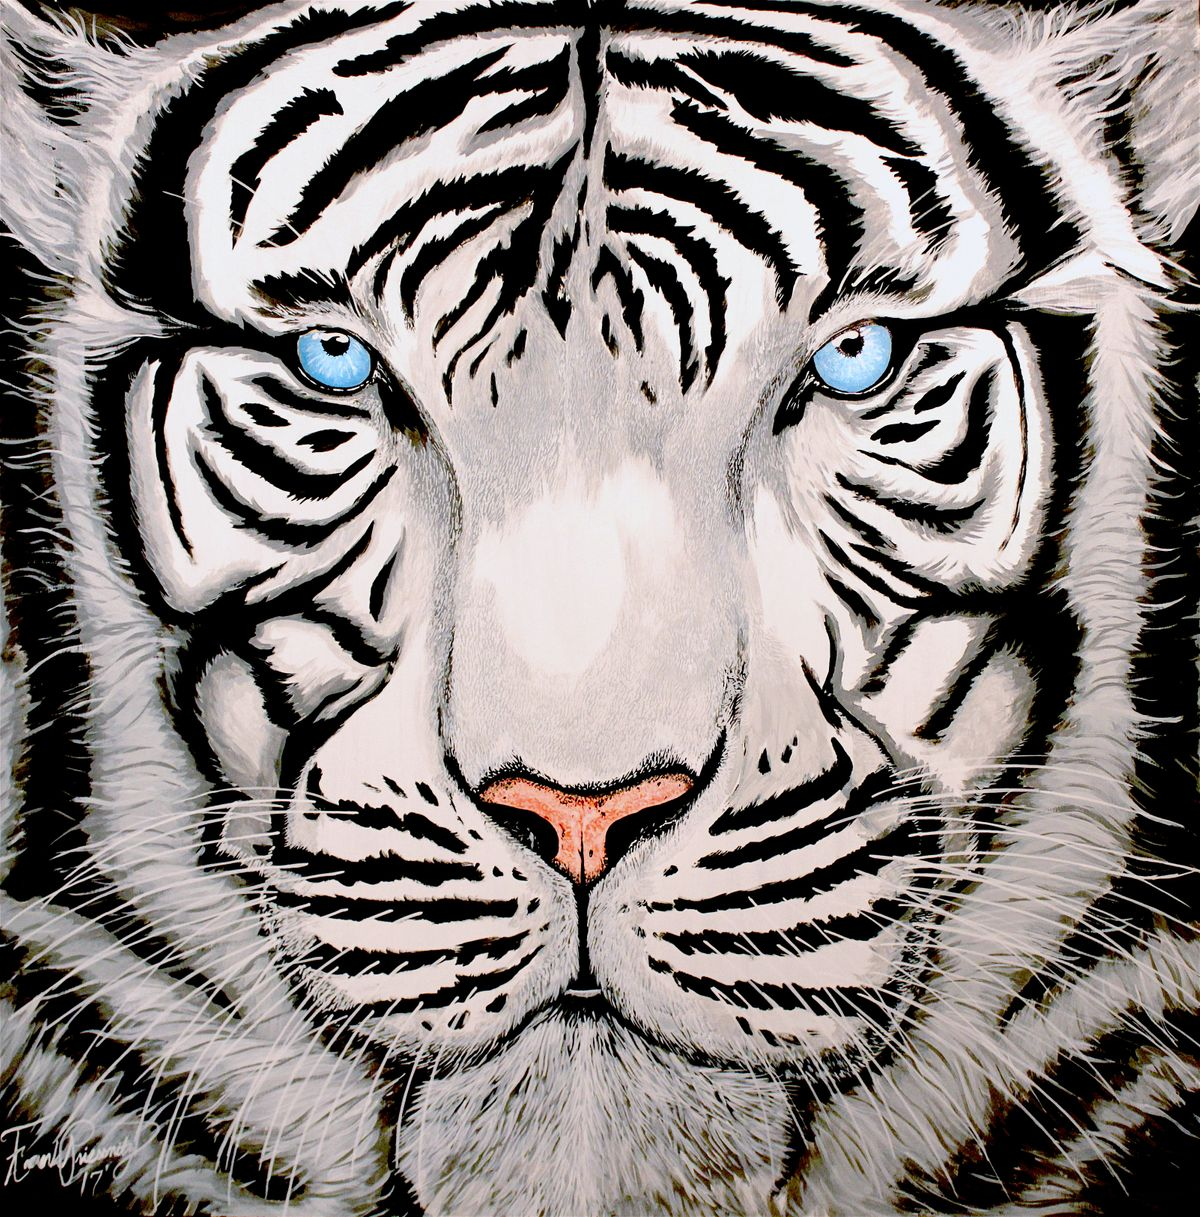 Frank_Priessnitz_White_Tiger_Austin_Art_Austin_gifts_Local_Art.jpg